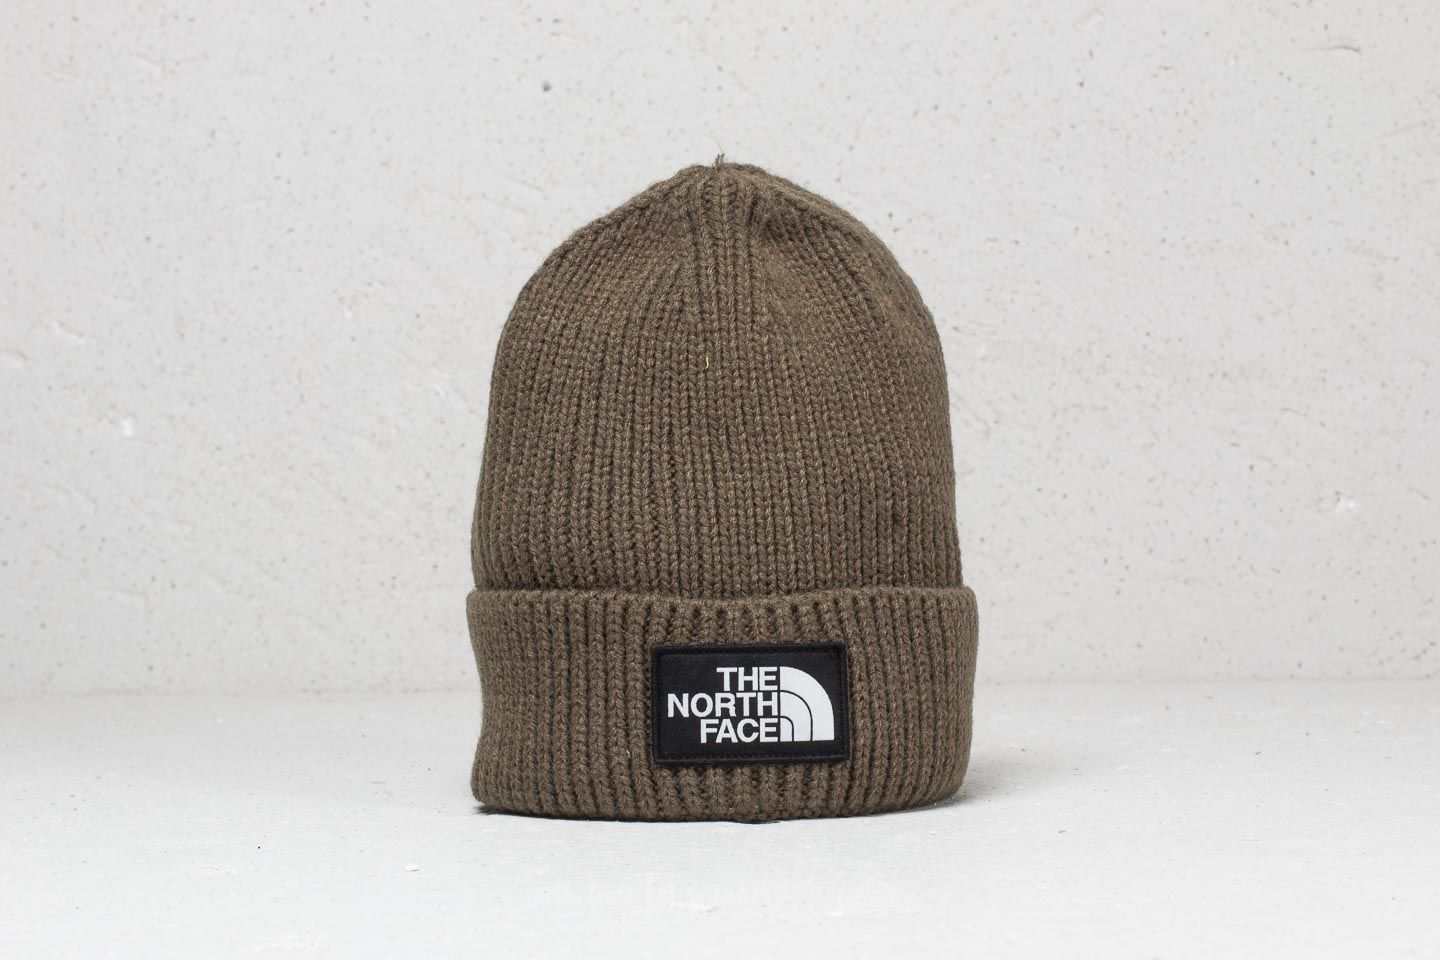 The North Face The Logo Box Cuffed Beanie New Taupe Green ... d506d0daf5c